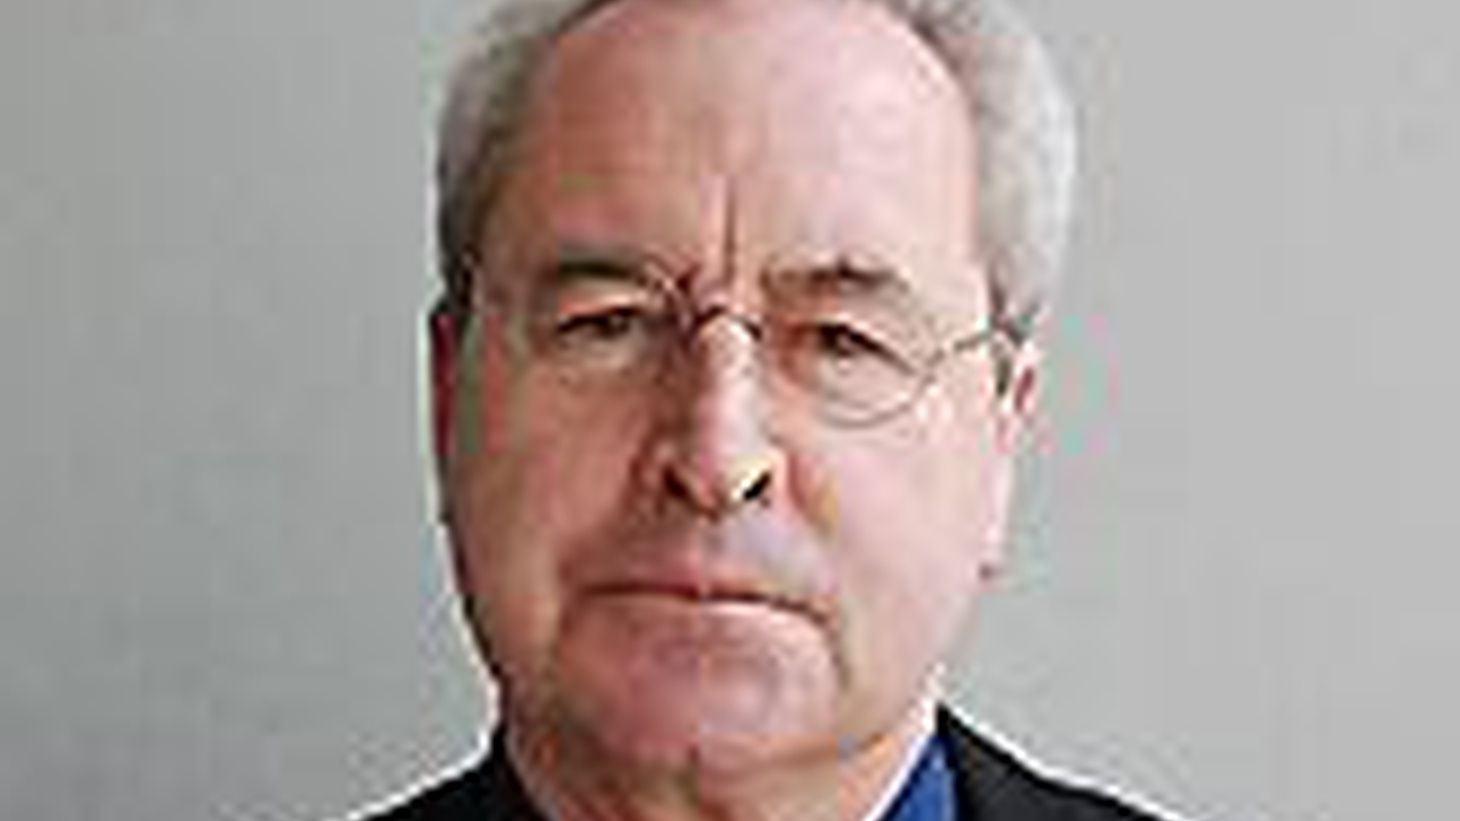 Booker Prize-winning novelist John Banville has written the first in a series of thrillers, and he's even taken on an alias or, at least, a nom de plume.